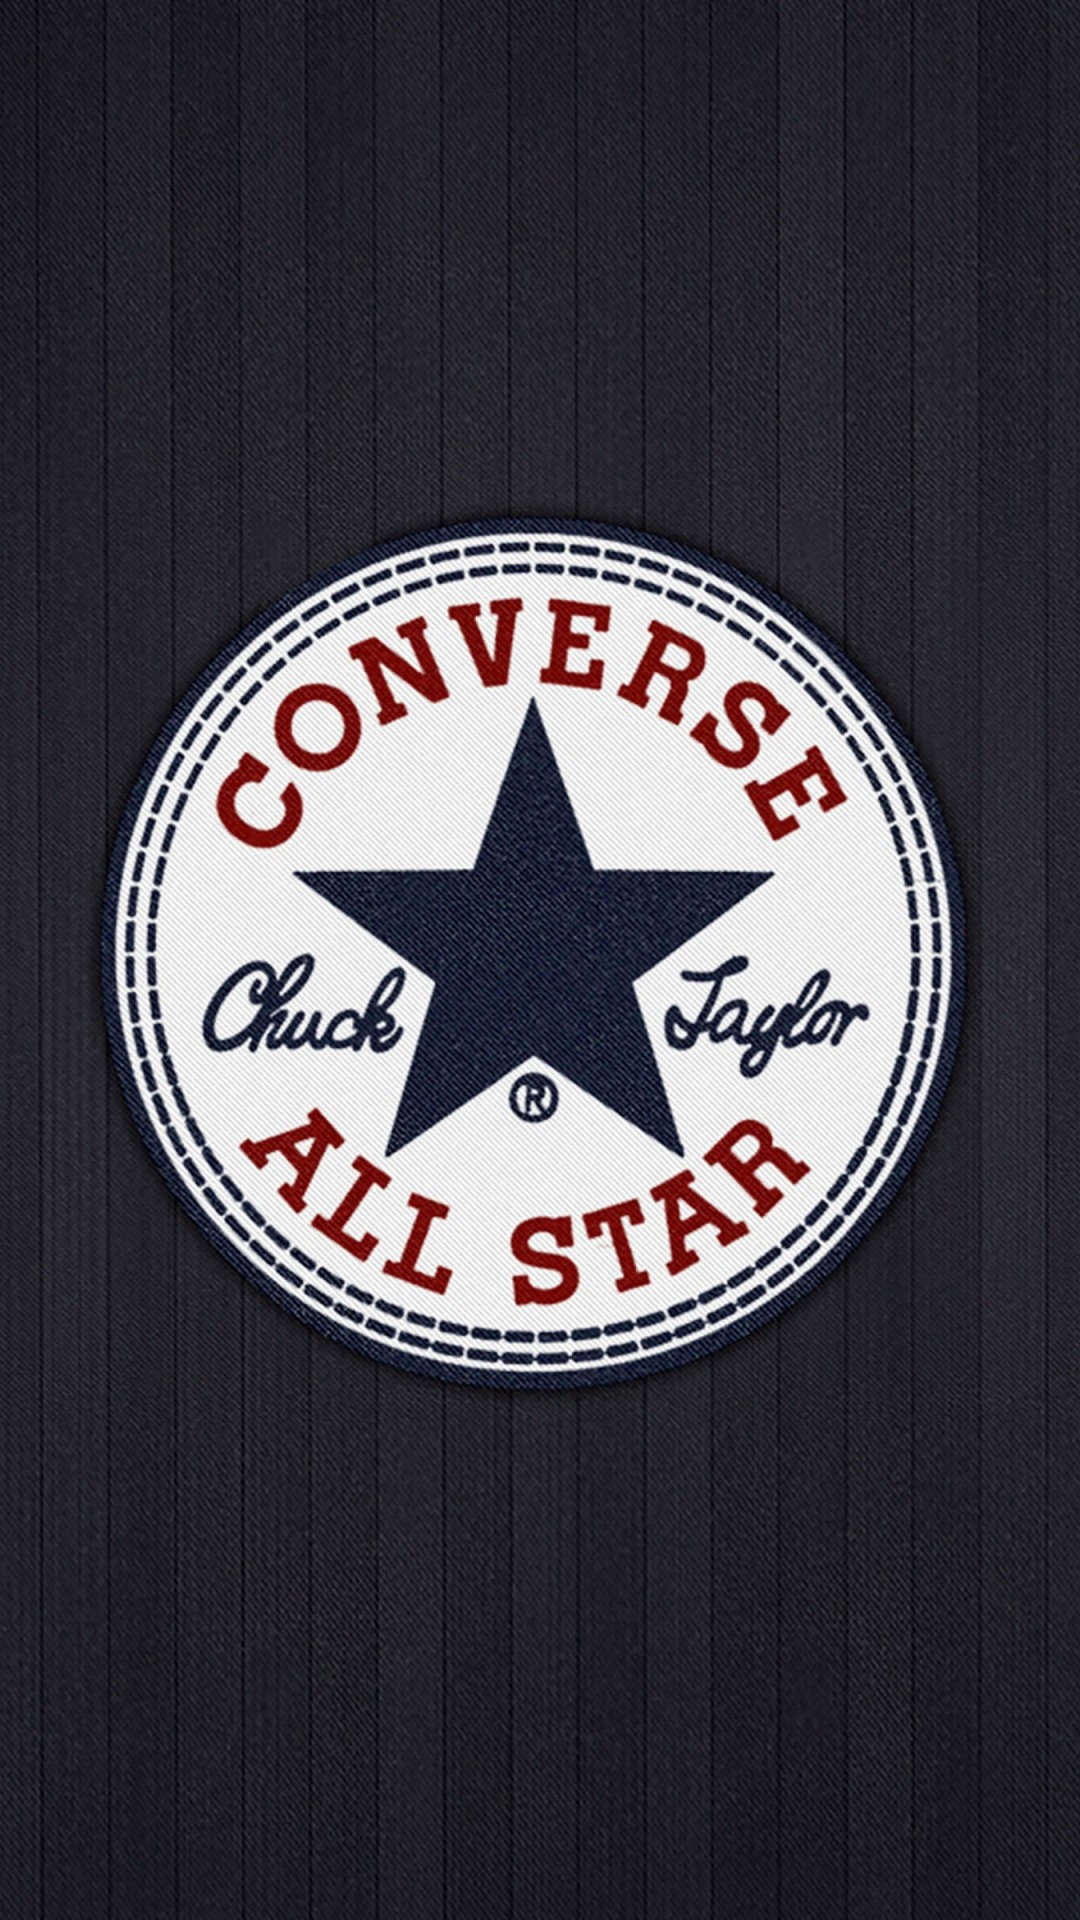 Converse All Star Wallpaper for SAMSUNG Galaxy S4